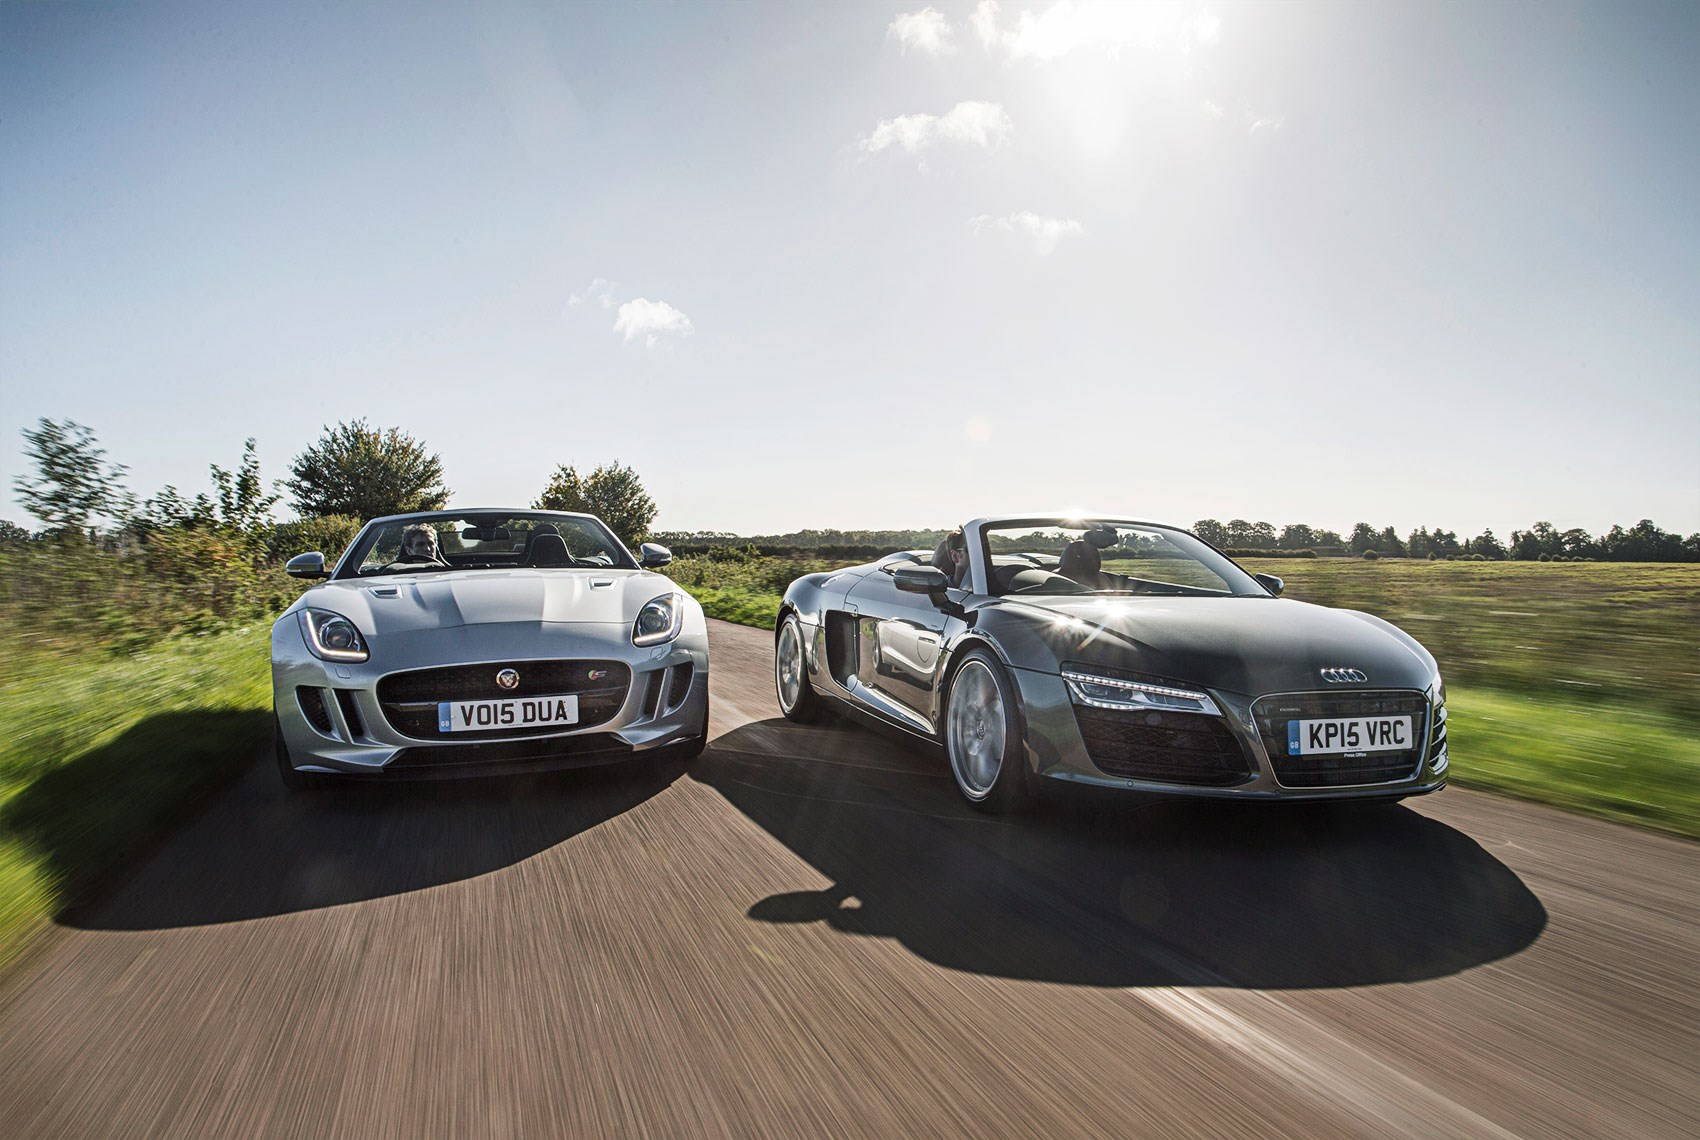 Icon Buyer: new Jaguar F-type V6 vs used Audi R8, CAR+ December 2015